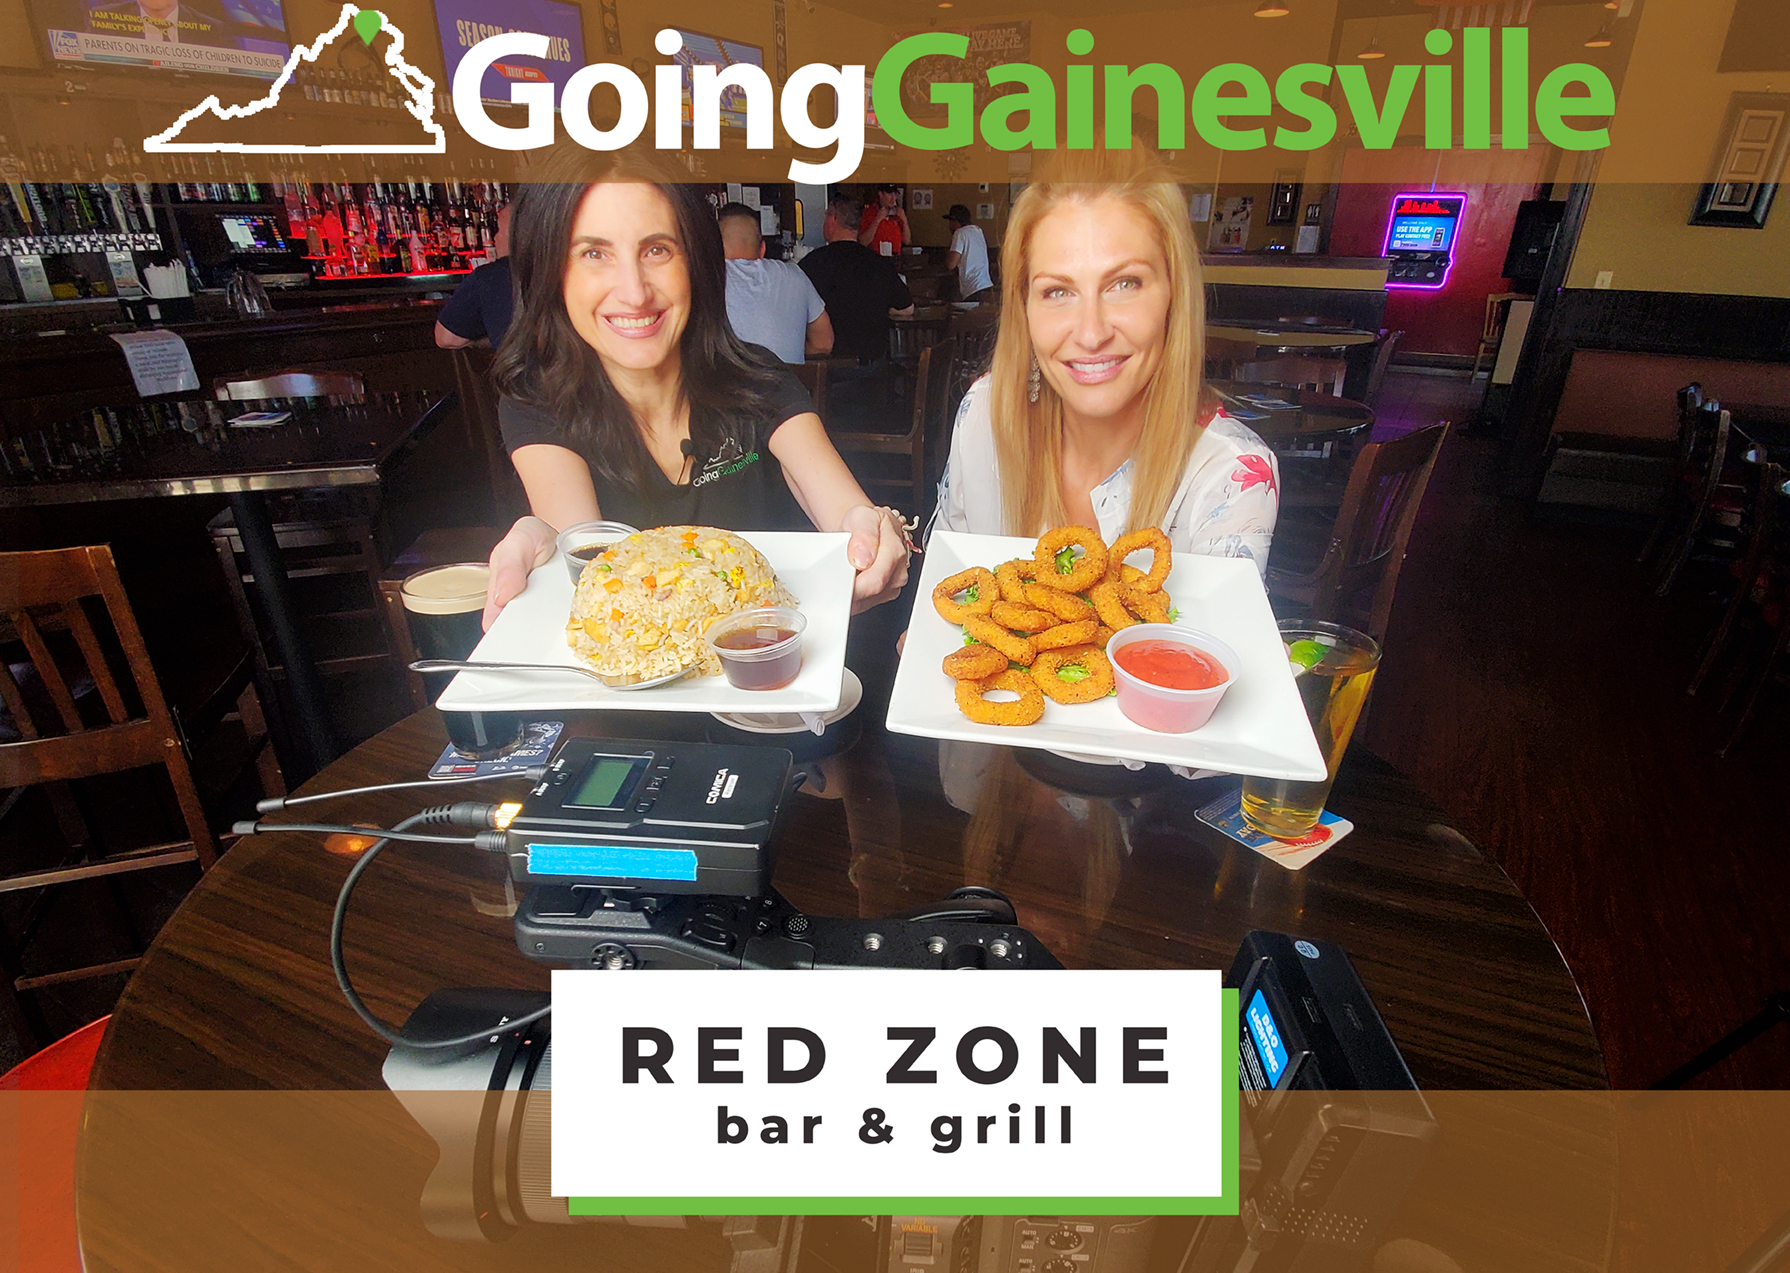 Redzone Bar & Grill